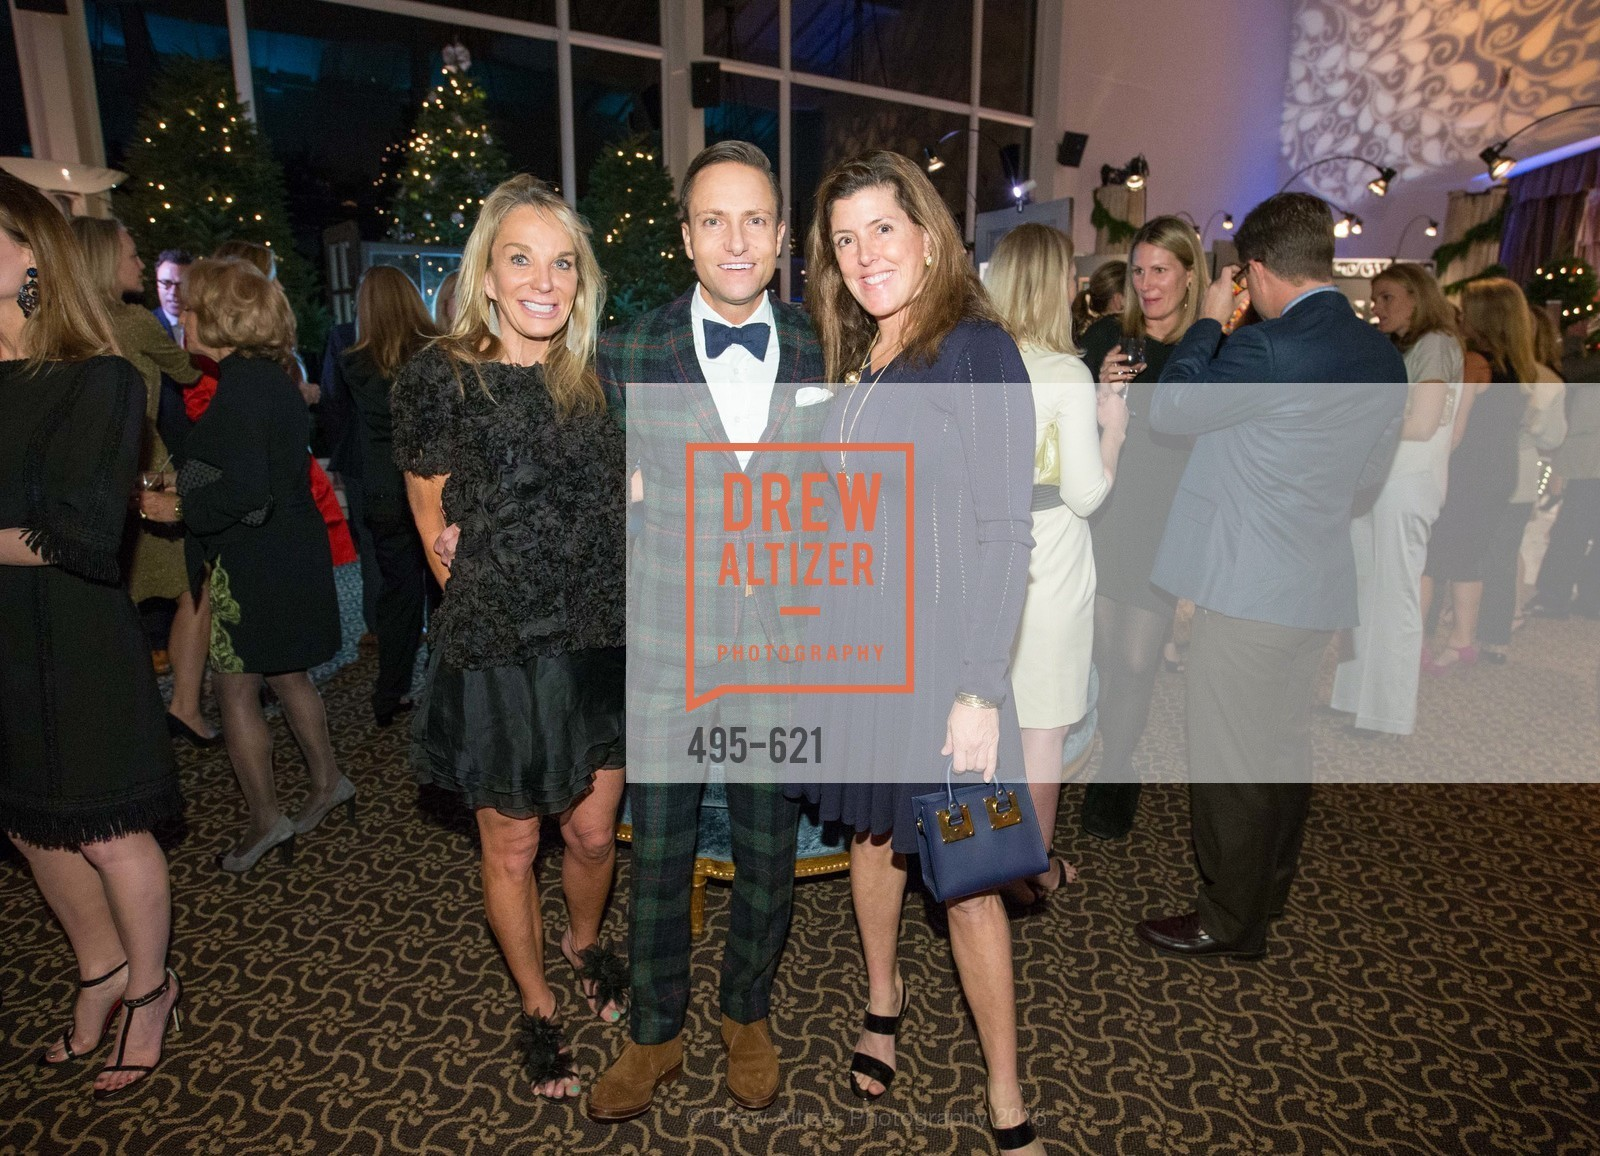 Michelle Cheatham, Ken Fulk, Liz Larned, Children of Shelters' Jingle and Mingle, Golden Gate Club. 135 Fisher Loop, December 3rd, 2015,Drew Altizer, Drew Altizer Photography, full-service event agency, private events, San Francisco photographer, photographer California